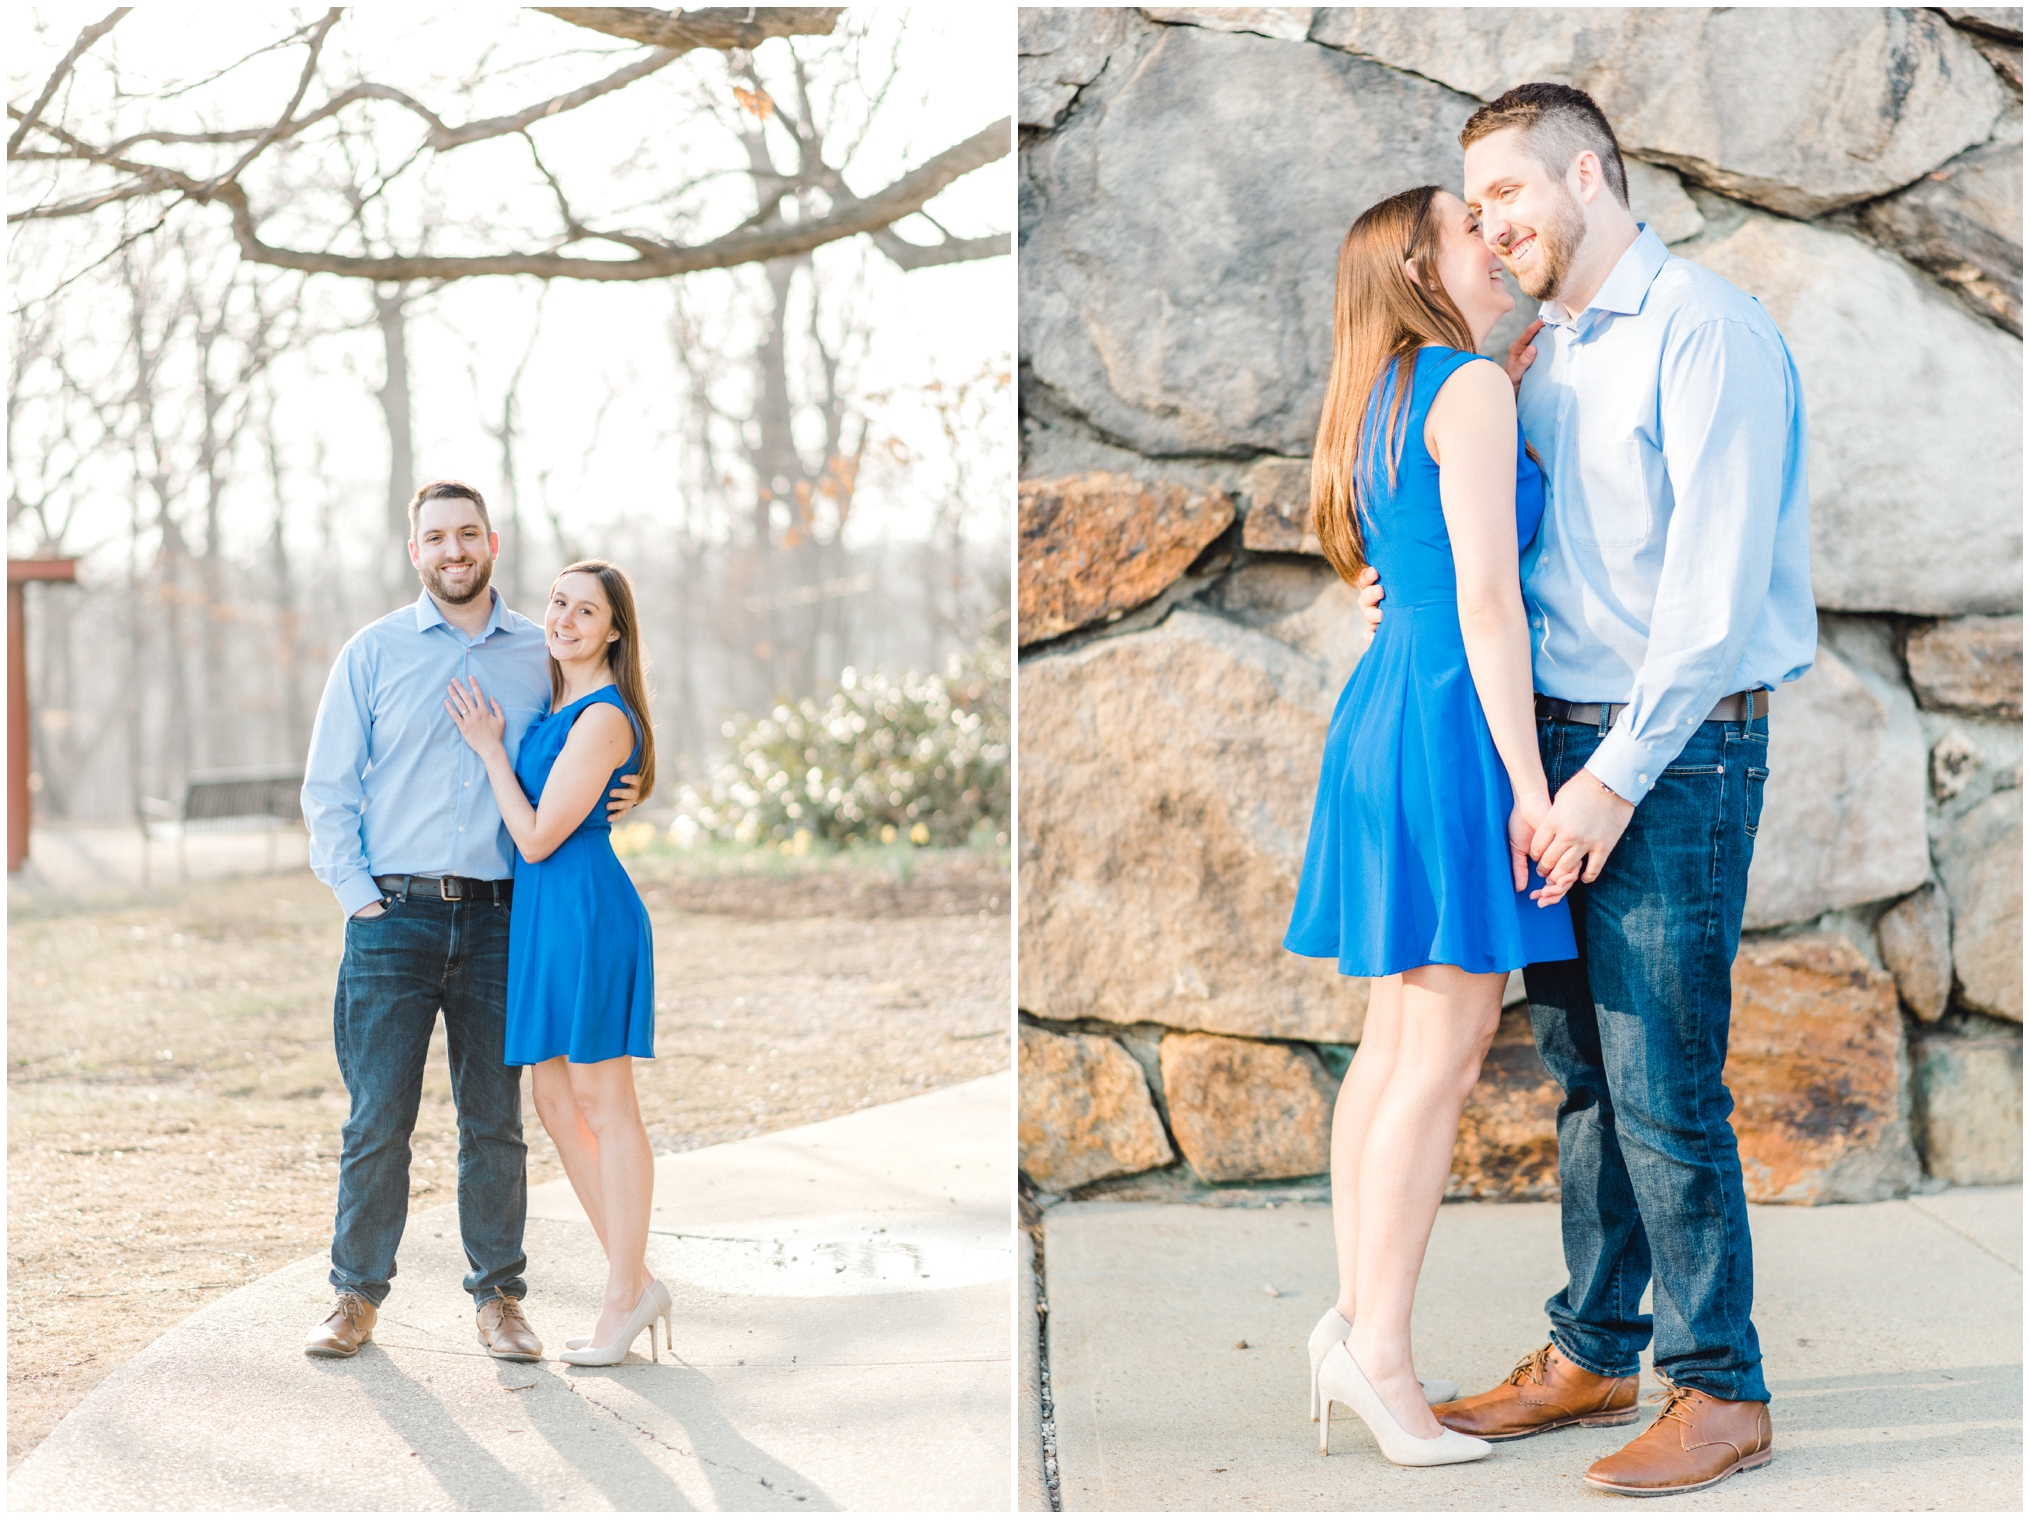 Spring Engagement Session at Rockford Park in Wilmington, Delaware | Krista Brackin Photography